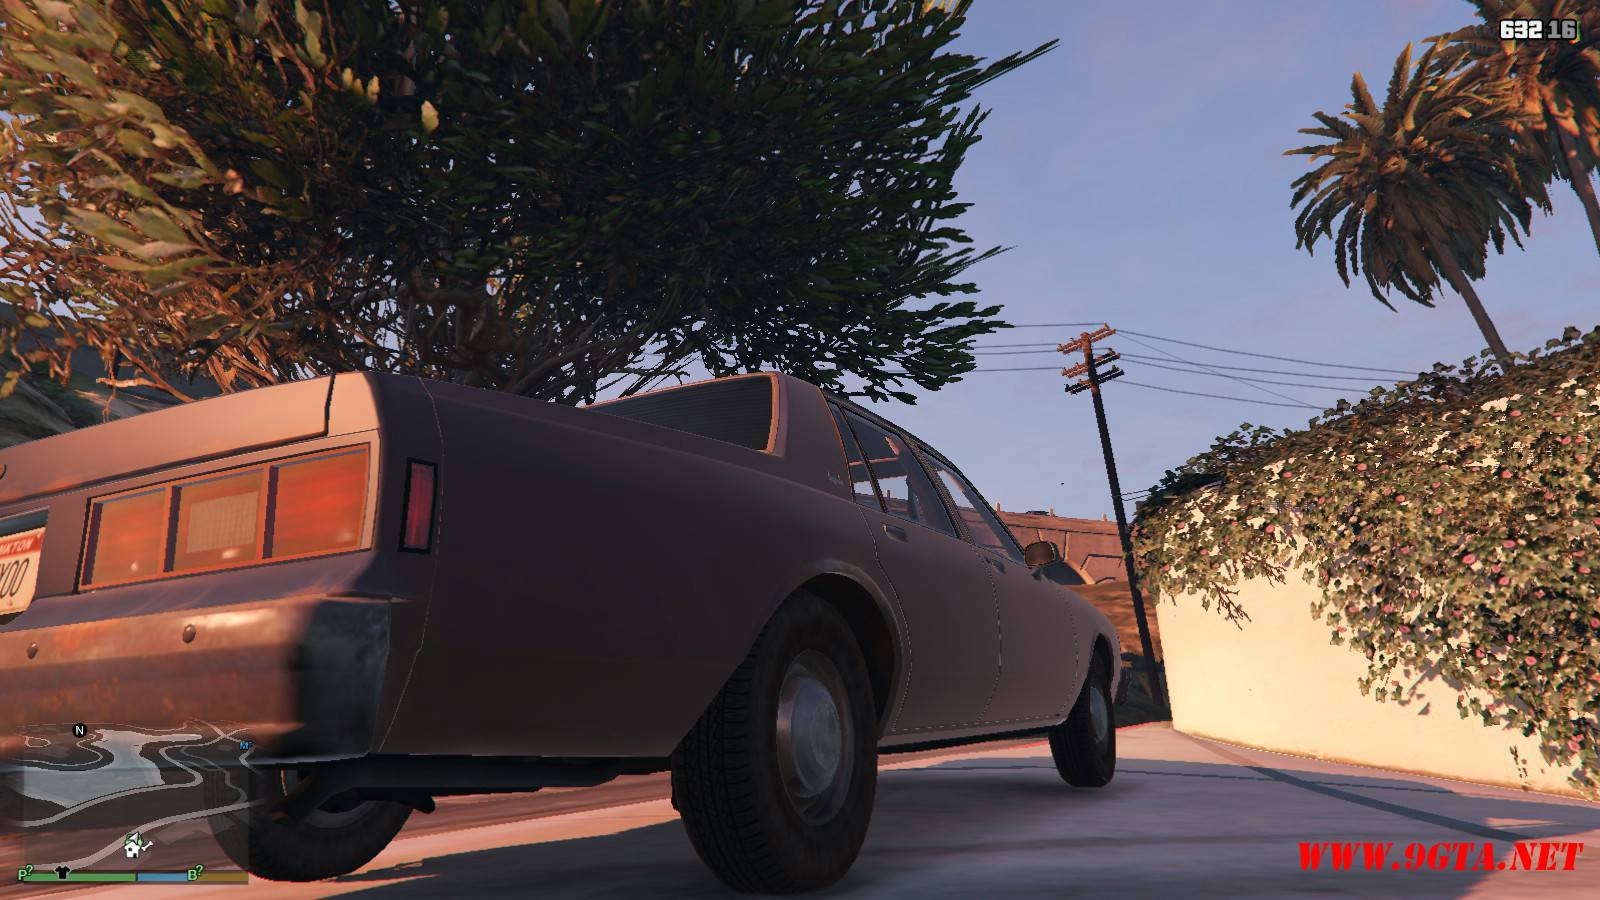 1985 Chevrolet Impala v1.1 Mod For GTA5 (9)